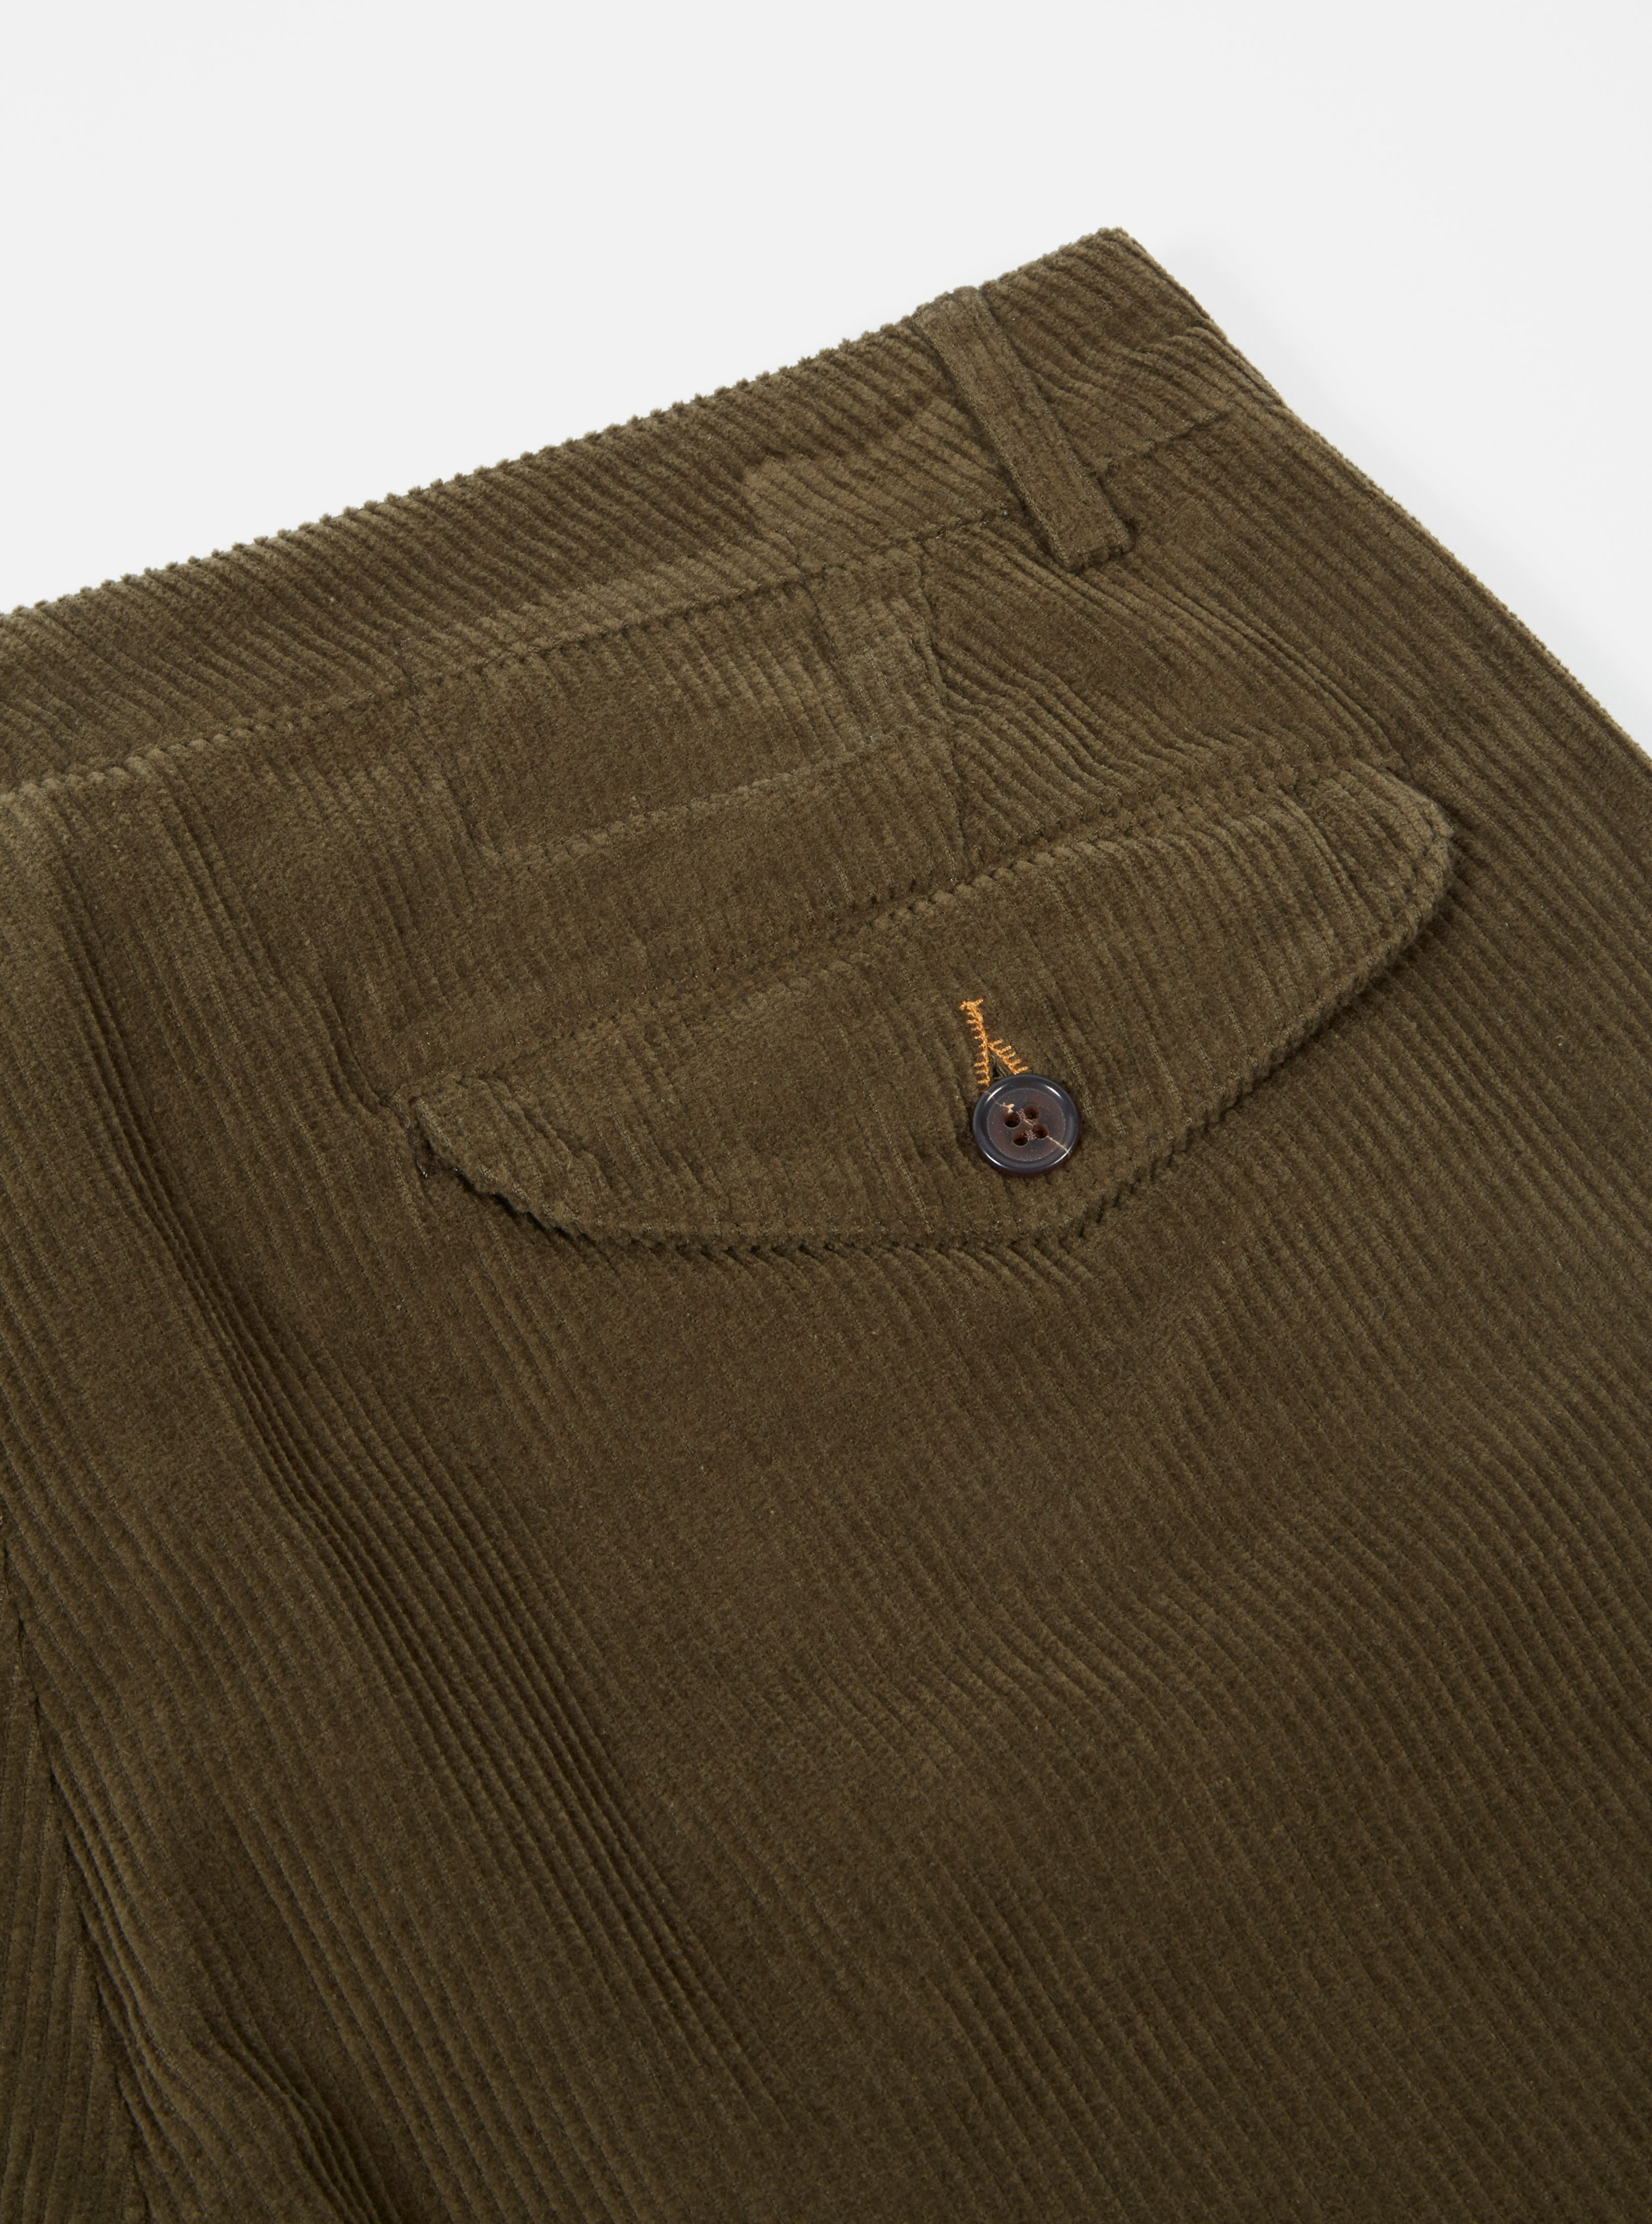 Universal Works Aston Pant in Olive Cord